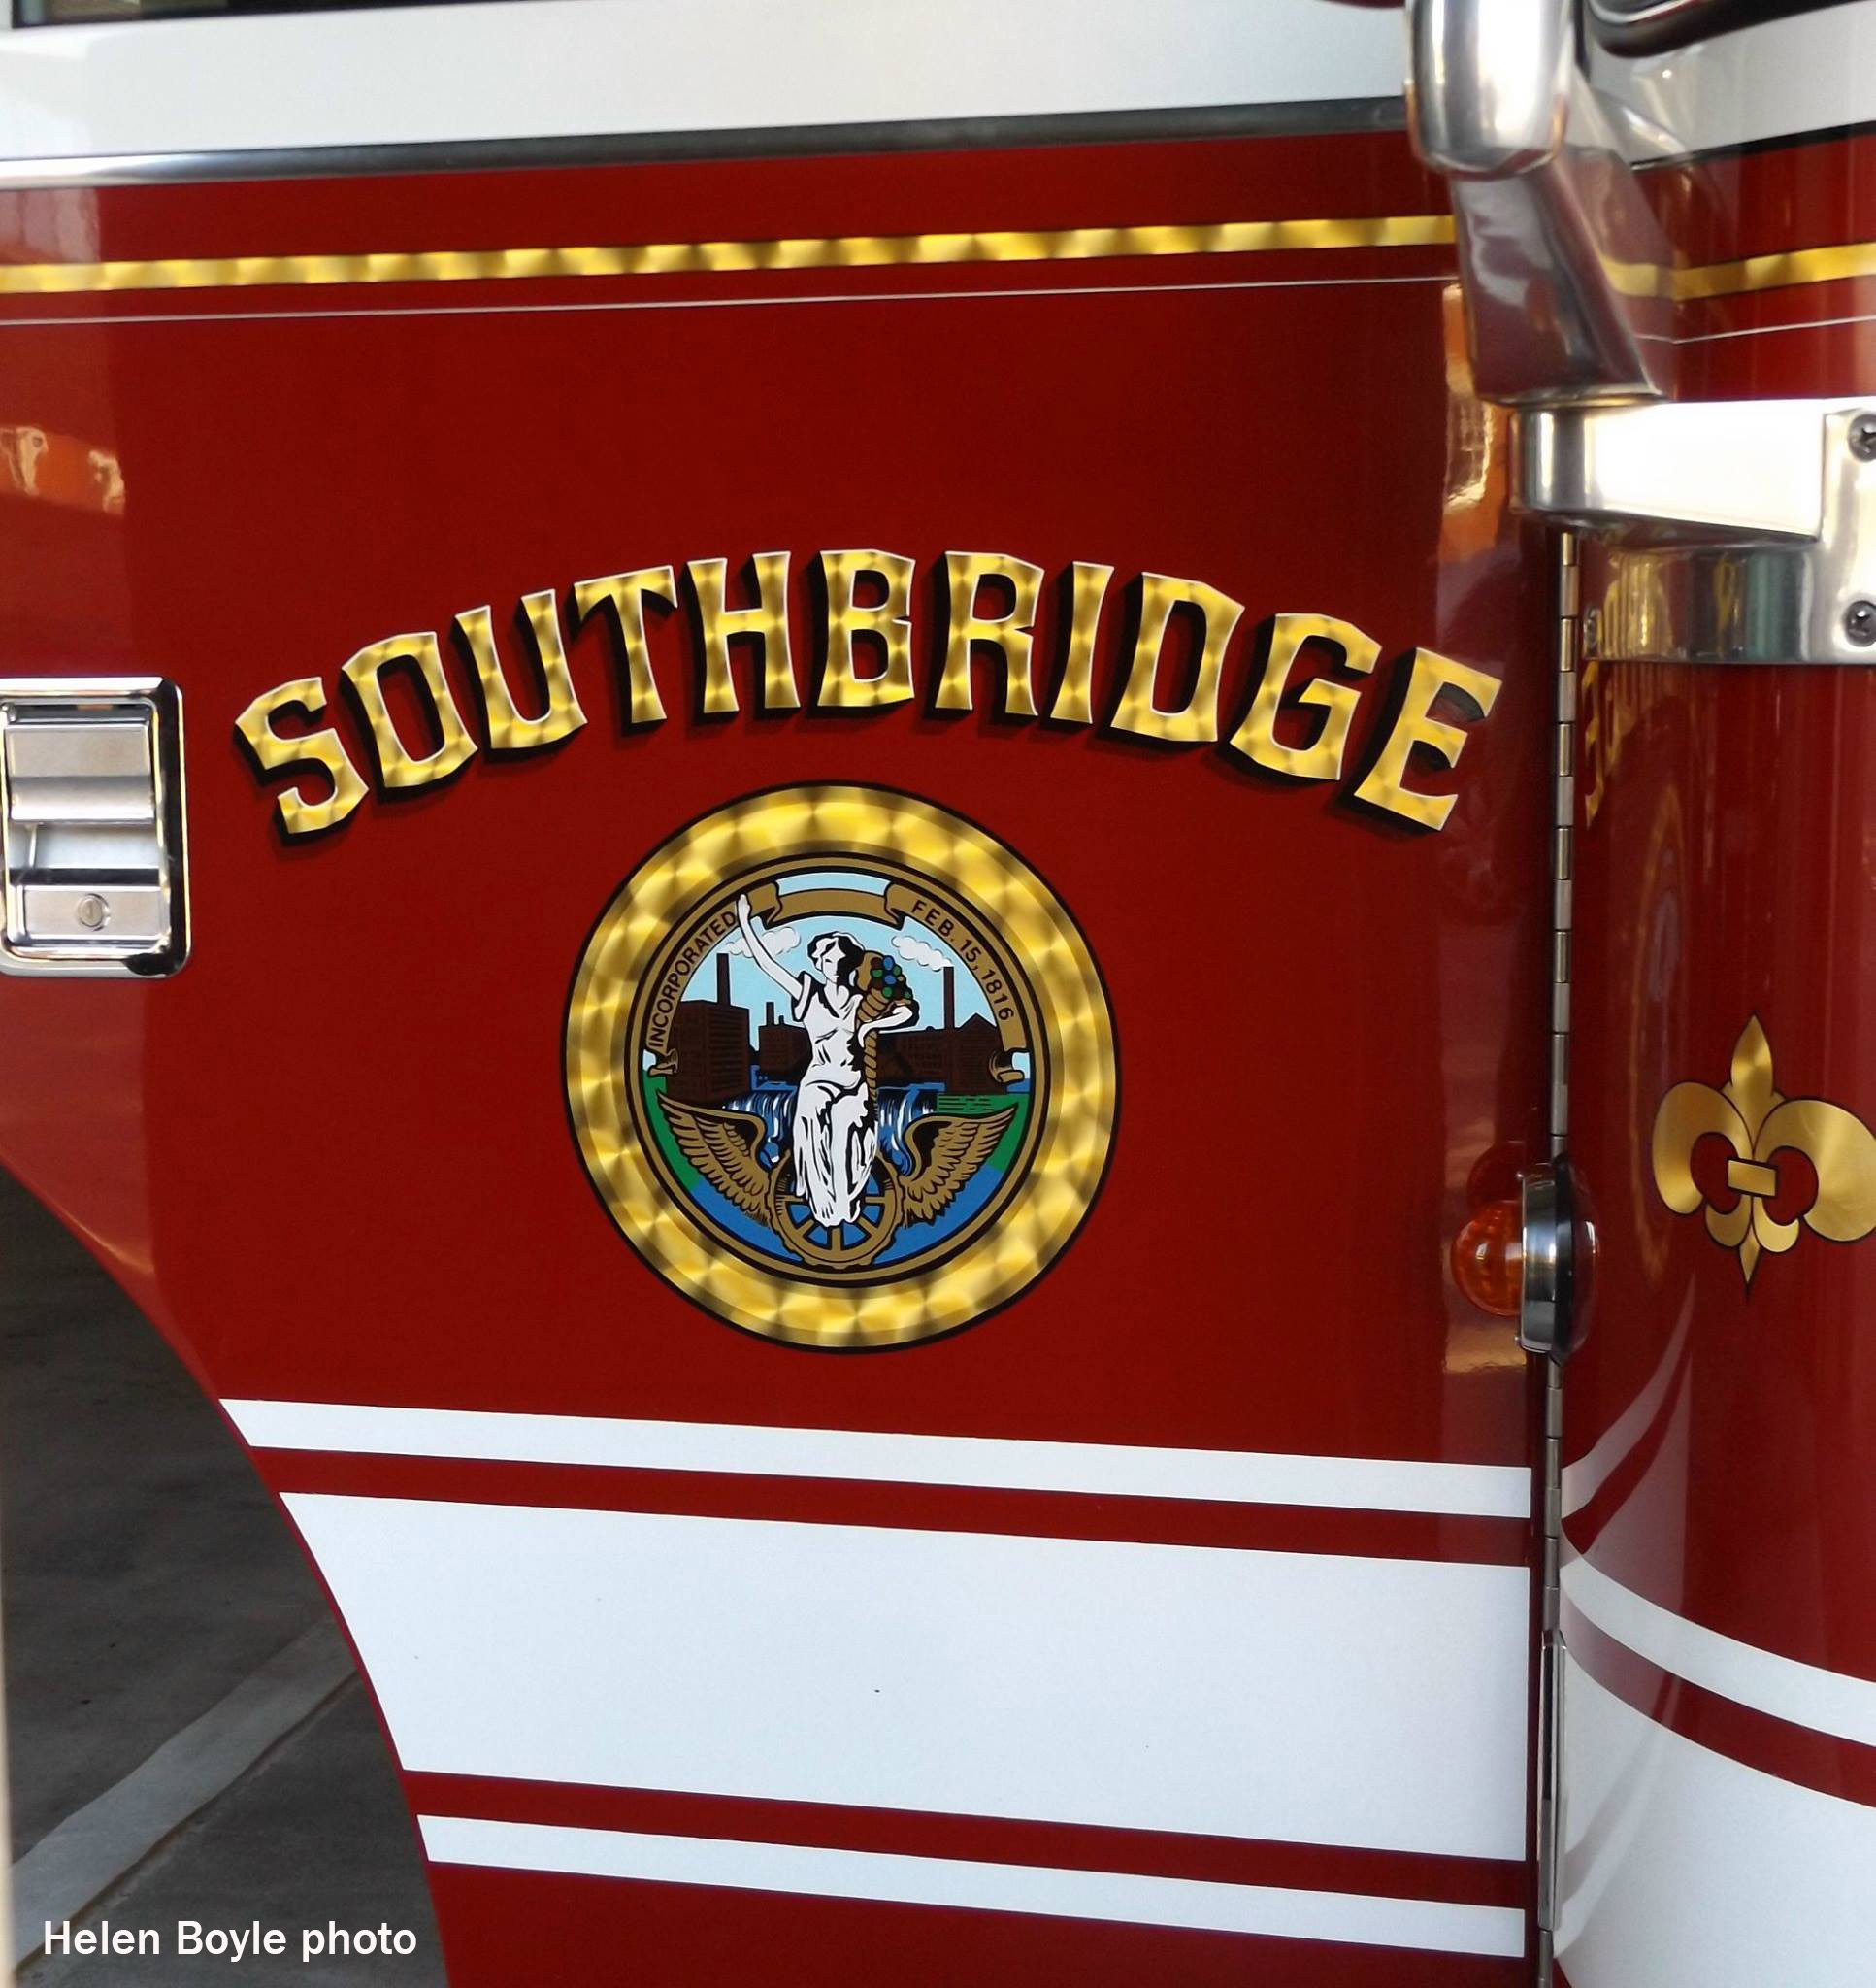 Local woman killed in three alarm blaze in Southbridge